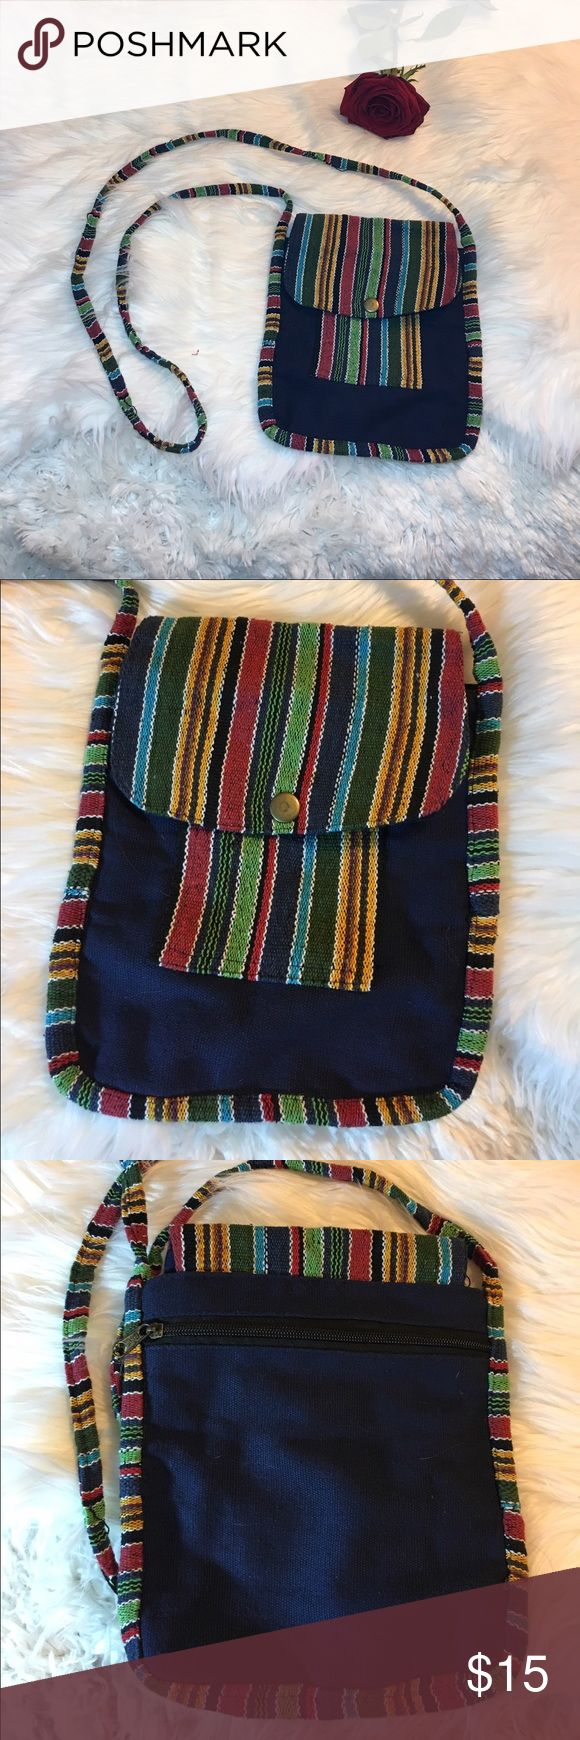 Bohemian festival cross body bag -Good condition!  -Pre loved item -I do not accept offers in the comments so please make all reasonable offers using the offer button only. :) -NO TRADES  -NO HOLDS 🚫 -I ship every Monday, Wednesday and Friday  -All items are hand washed before they are shipped out   💕Instagram- allisonsbeautyboutique 💕 Your purchase is going to help me graduate community college with as little debt as possible. Thank you! Vintage Bags Crossbody Bags